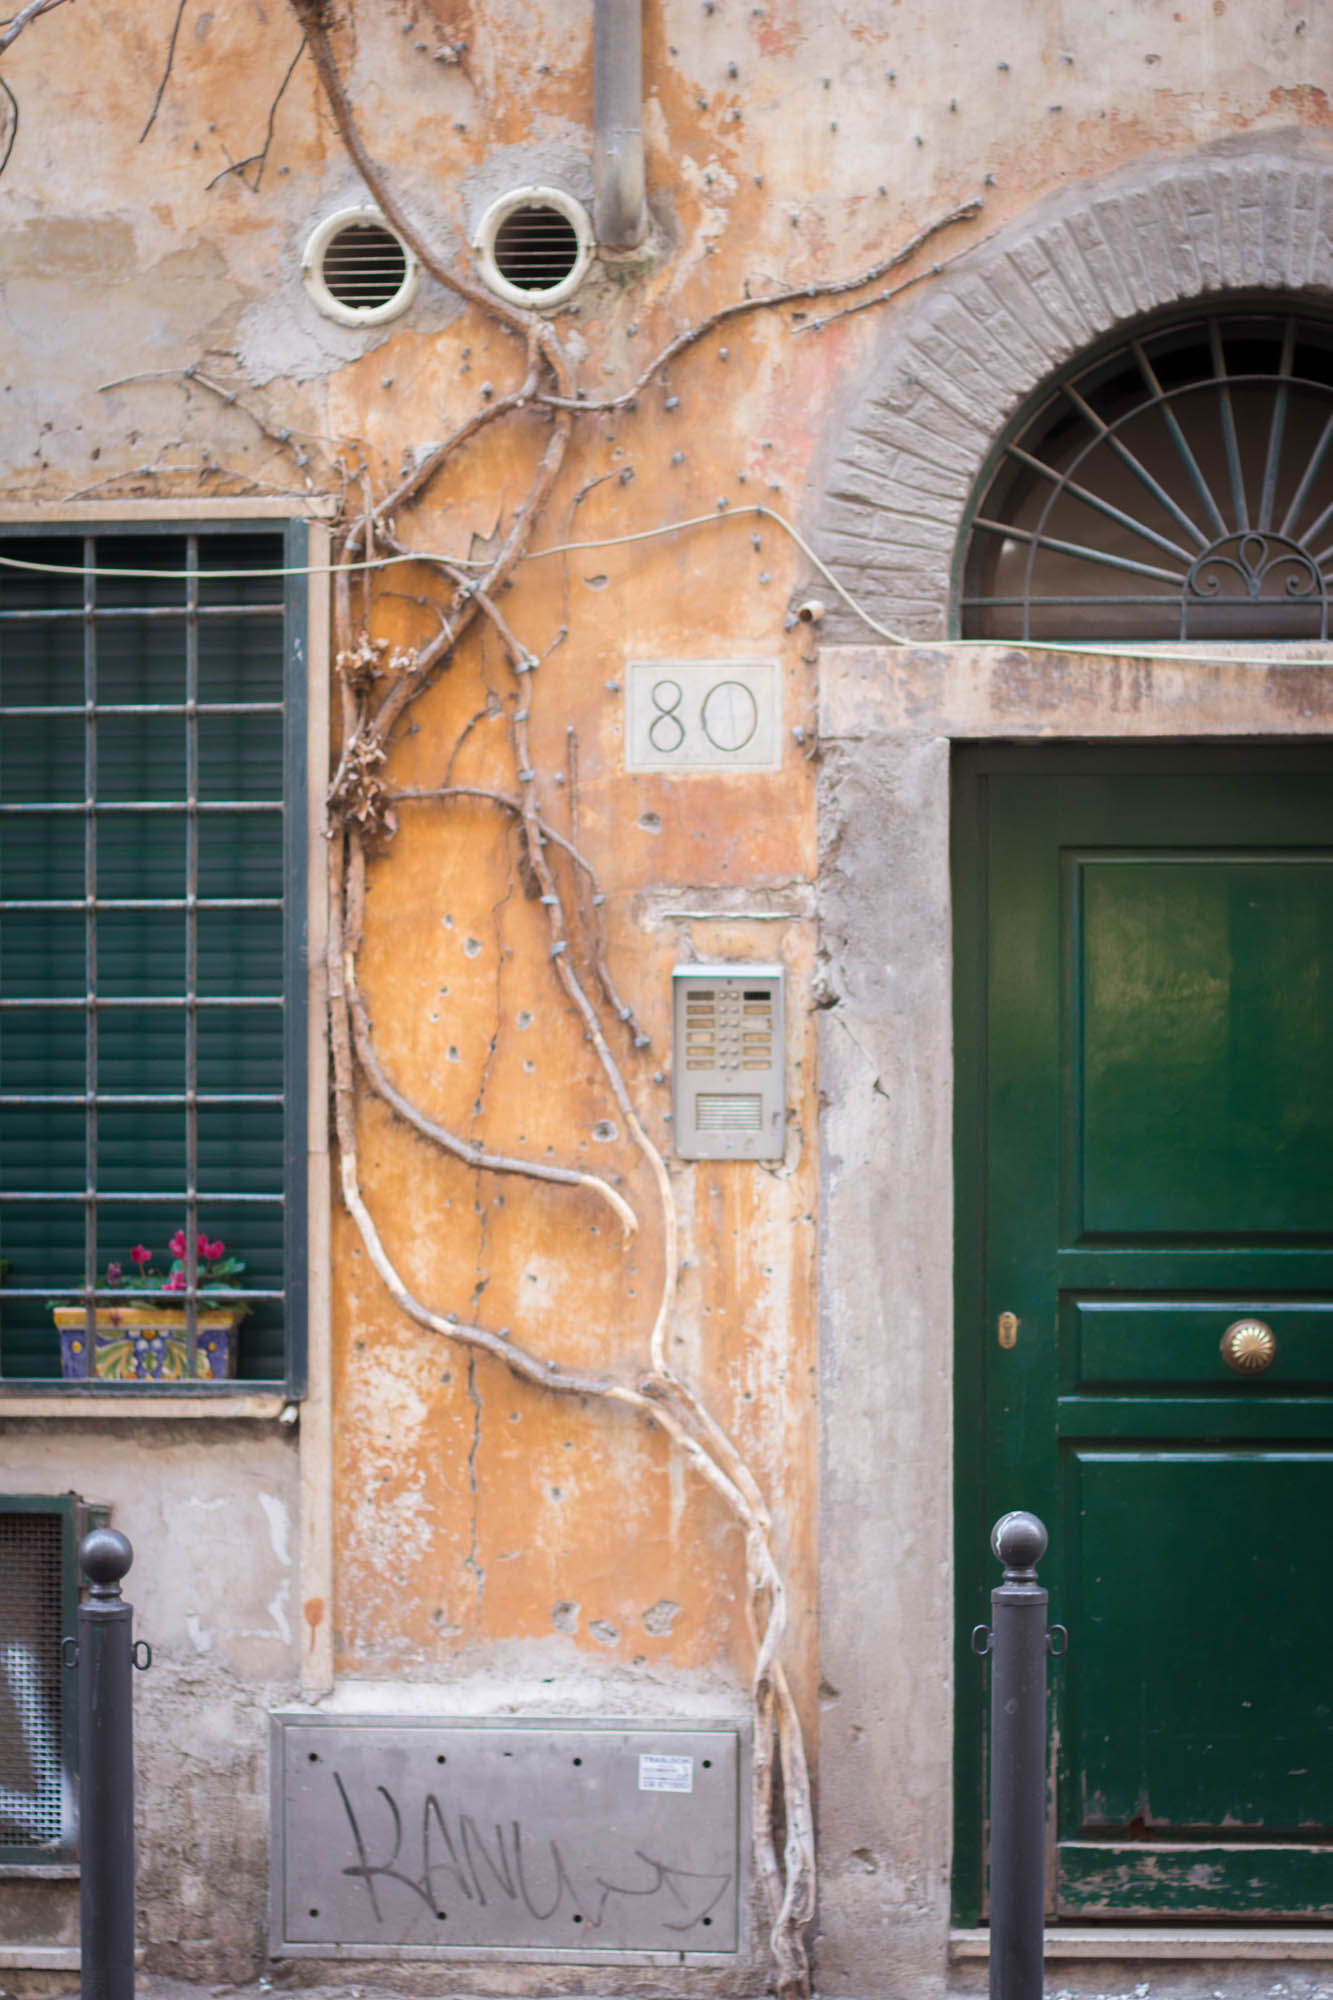 Streets in Rome, Italy